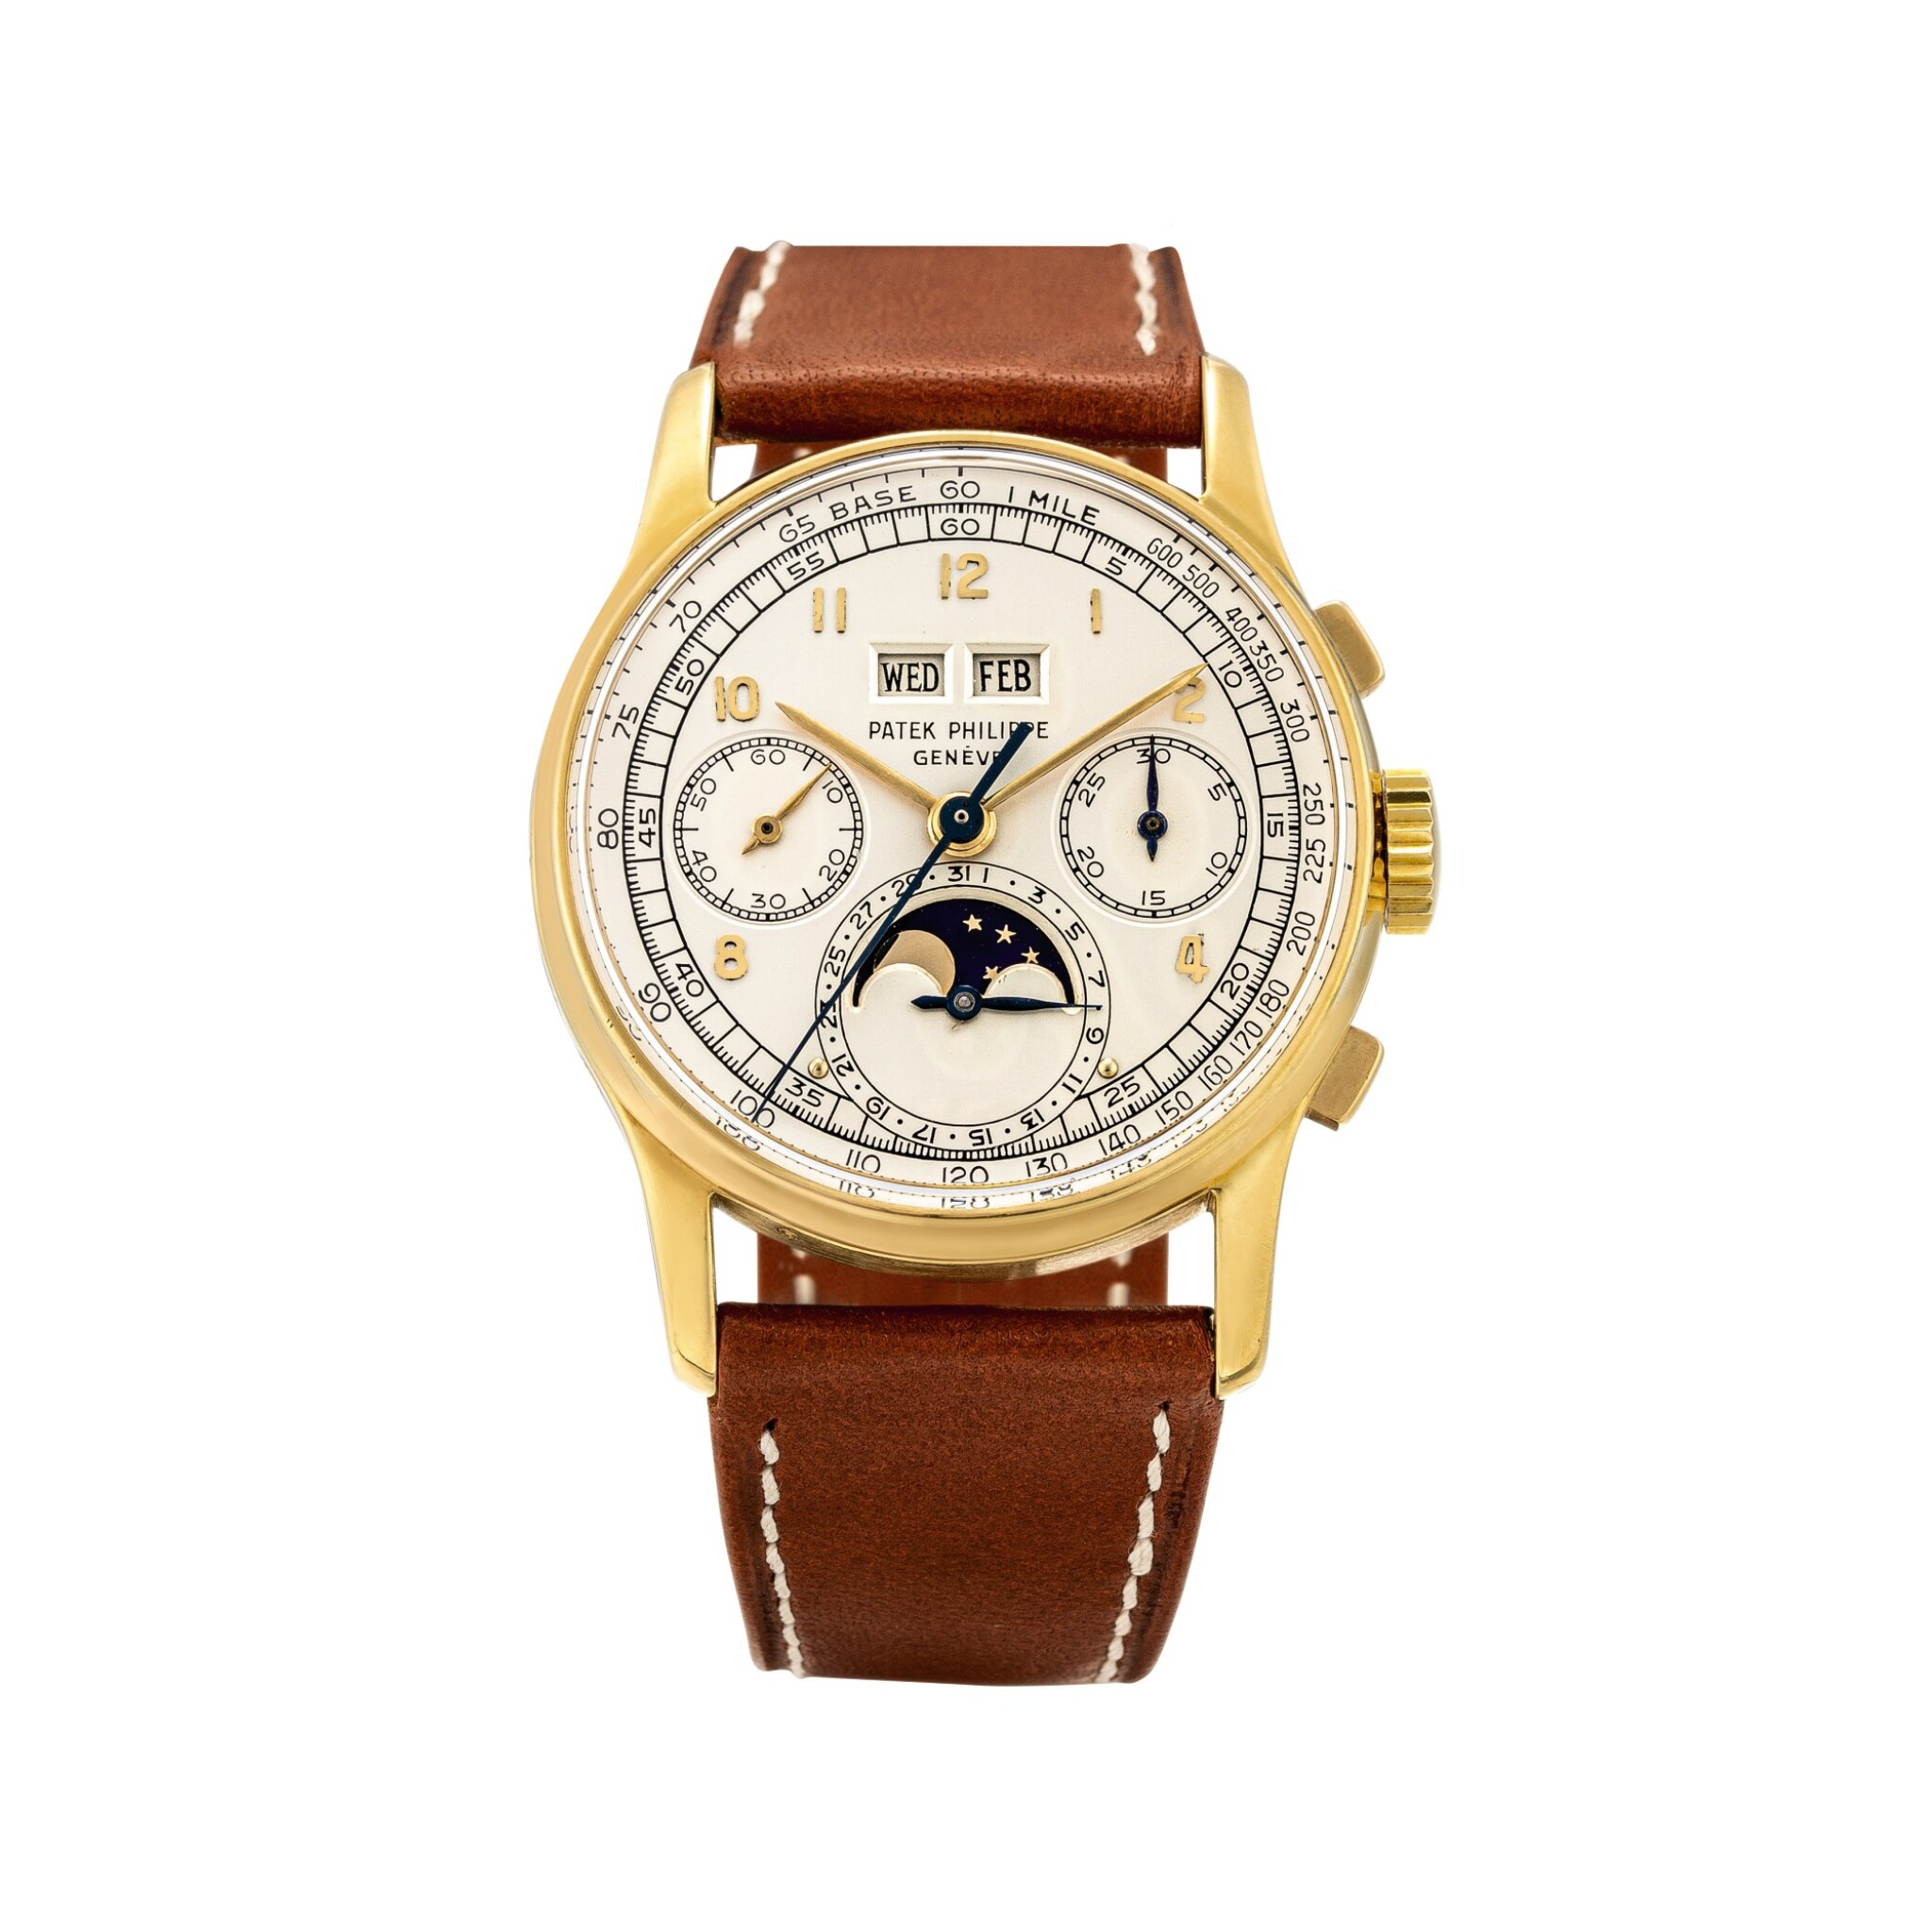 View full screen - View 1 of Lot 2263. Patek Philippe | Reference 1518, A highly exceptional yellow gold perpetual calendar chronograph wristwatch with moon phases and original box, Circa 1951 | 百達翡麗 | 型號1518 非常精美黃金萬年曆計時腕錶,備月相顯示,附帶原裝盒子,約1951年製.